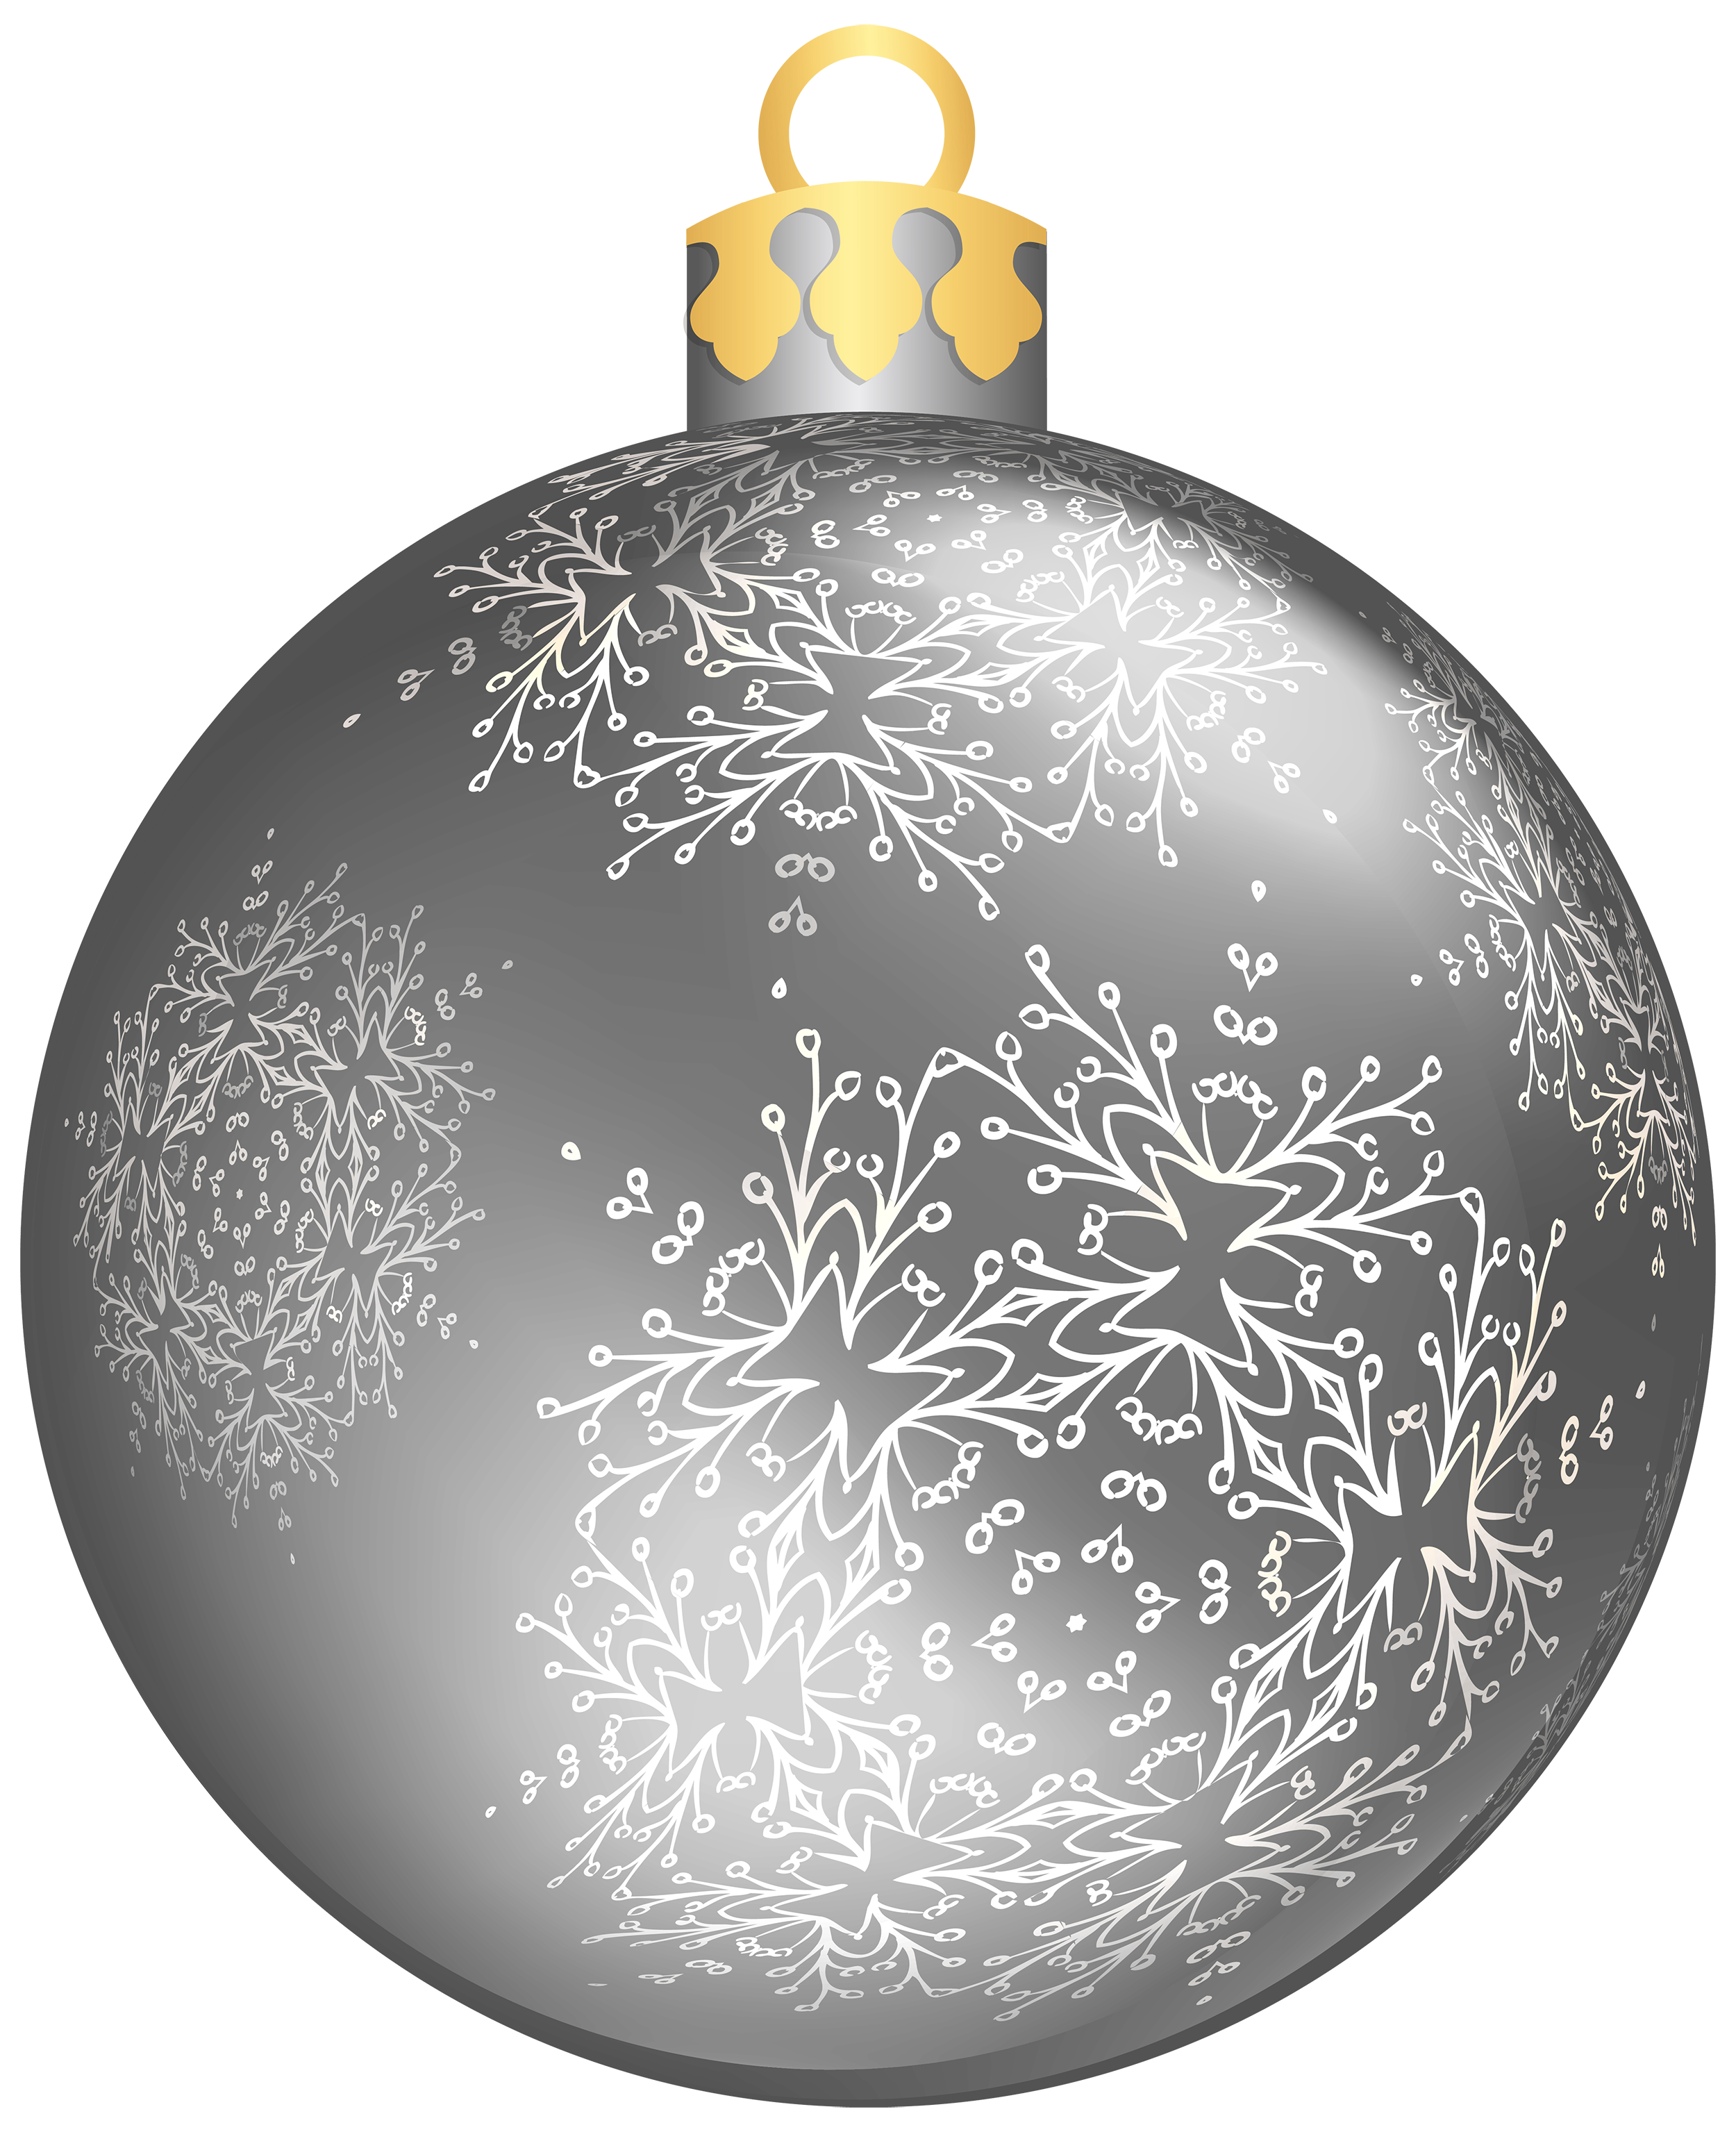 Silver Christmas Ball PNG Transparent Images